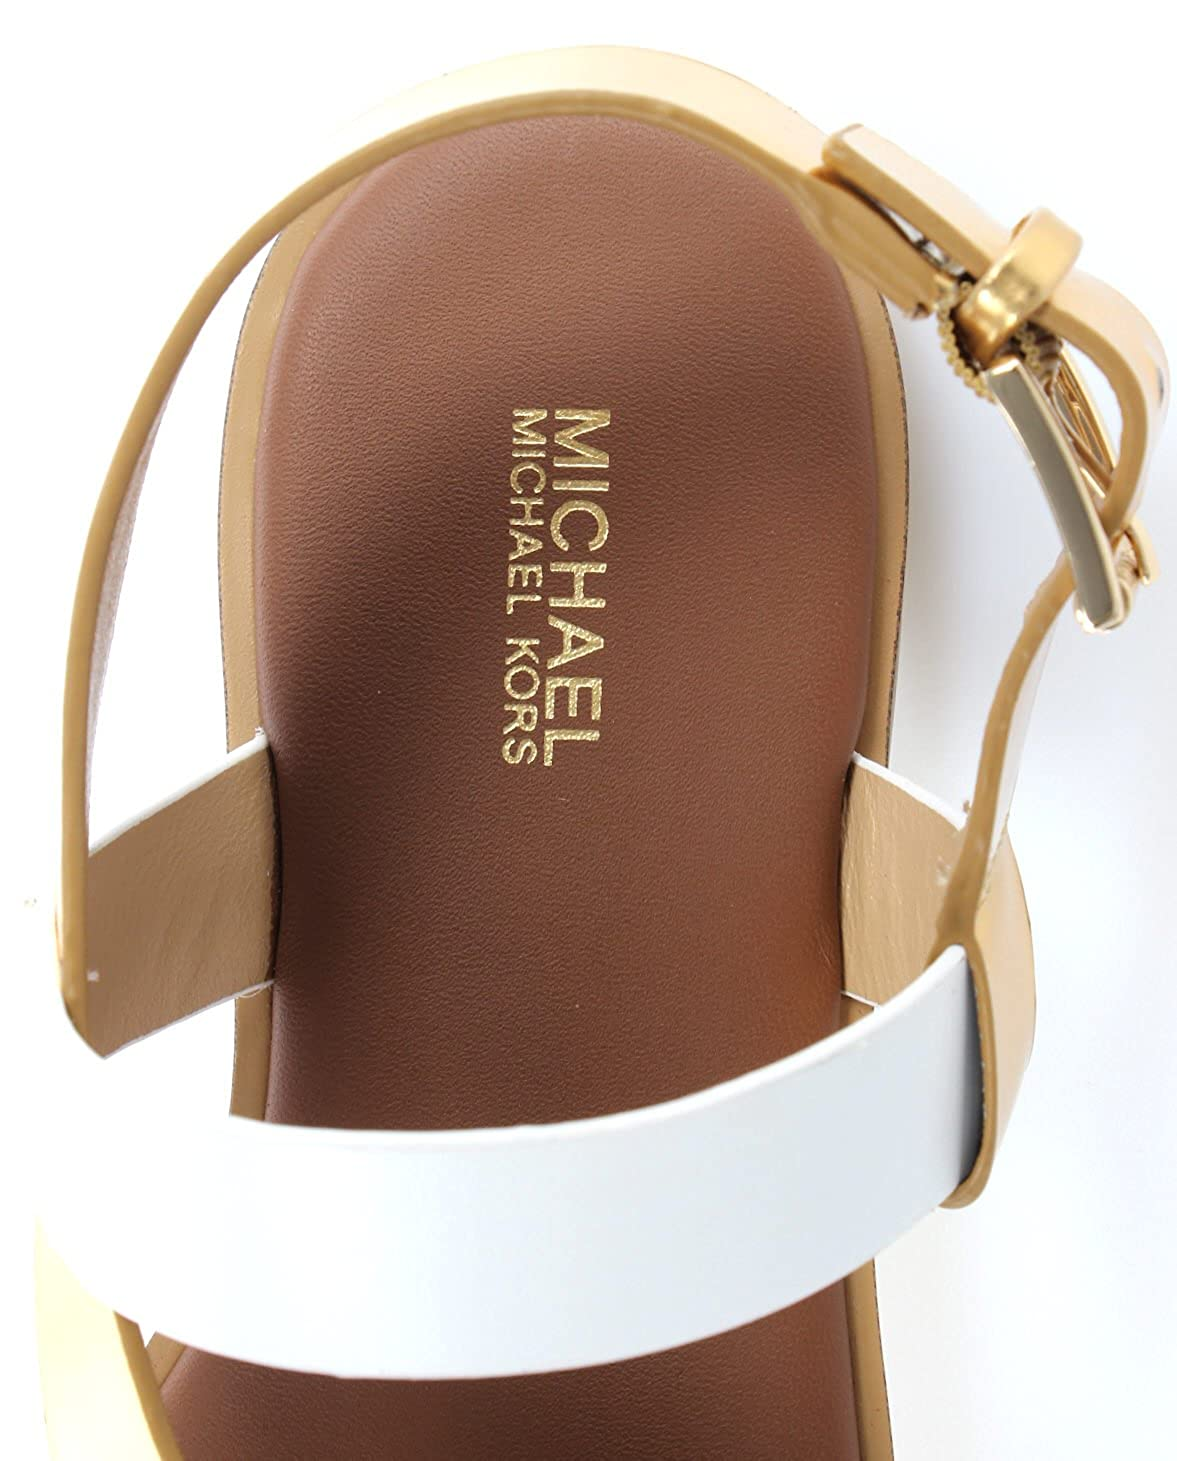 73e54c6bd14 Michael Kors Michael by Mackay Gold and Luggage Flat Sandal  Amazon.co.uk   Shoes   Bags